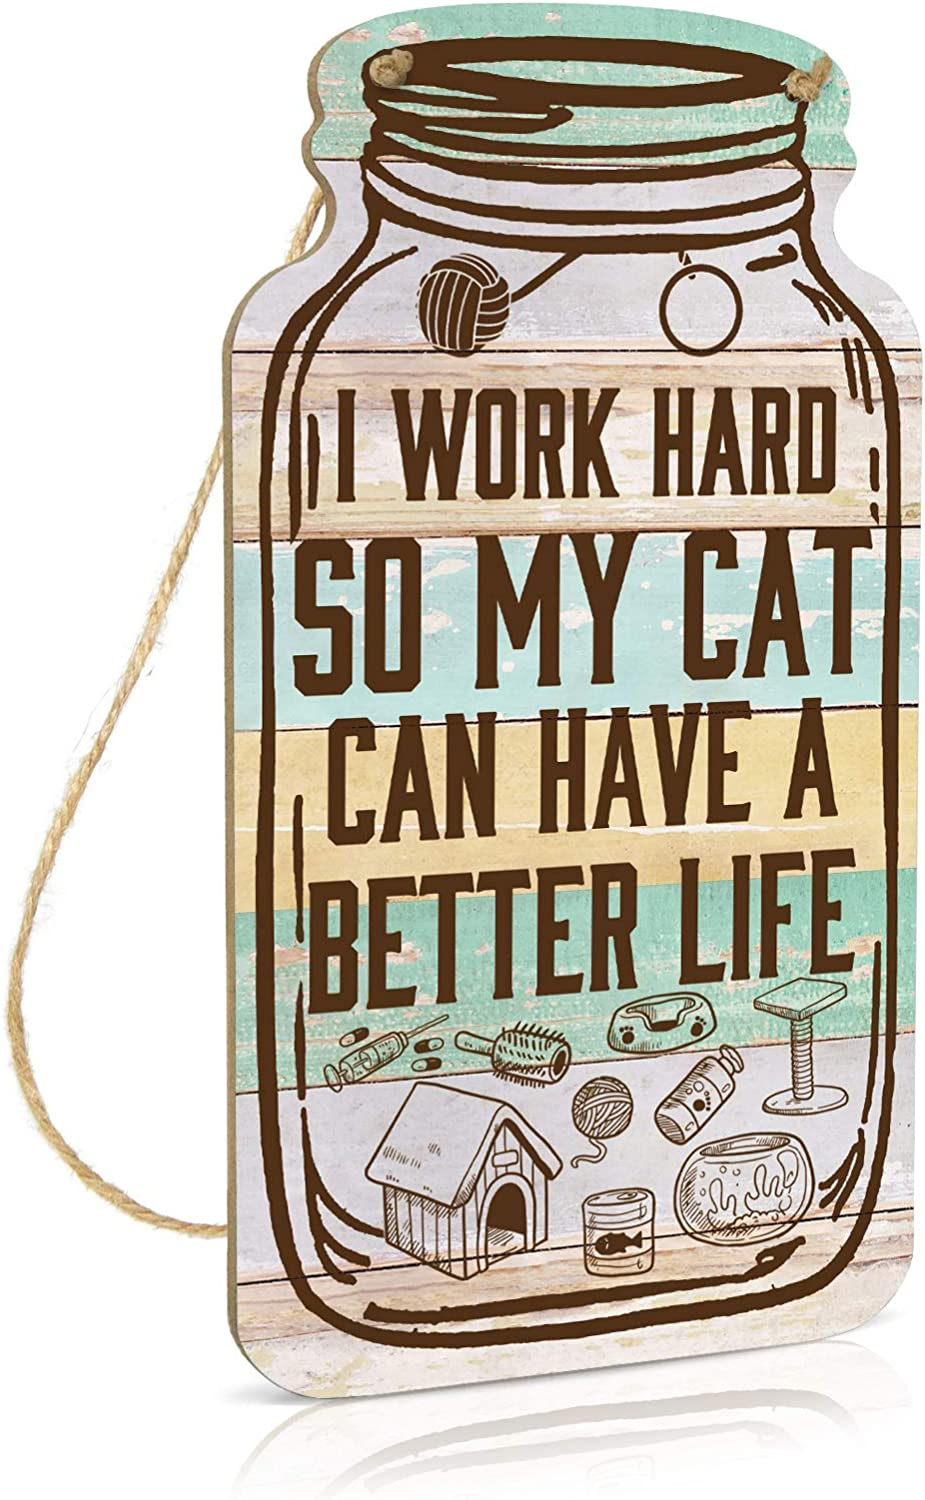 Putuo Decor Cat Wall Decor, Funny Pet Sign for Home, Office, Living Room, Bedroom, 8.3x4.5 Inches Mason Jar Wood Hanging Plaque, Gift for Cat Lover - I Work Hard So My Cat Can Have a Better Life